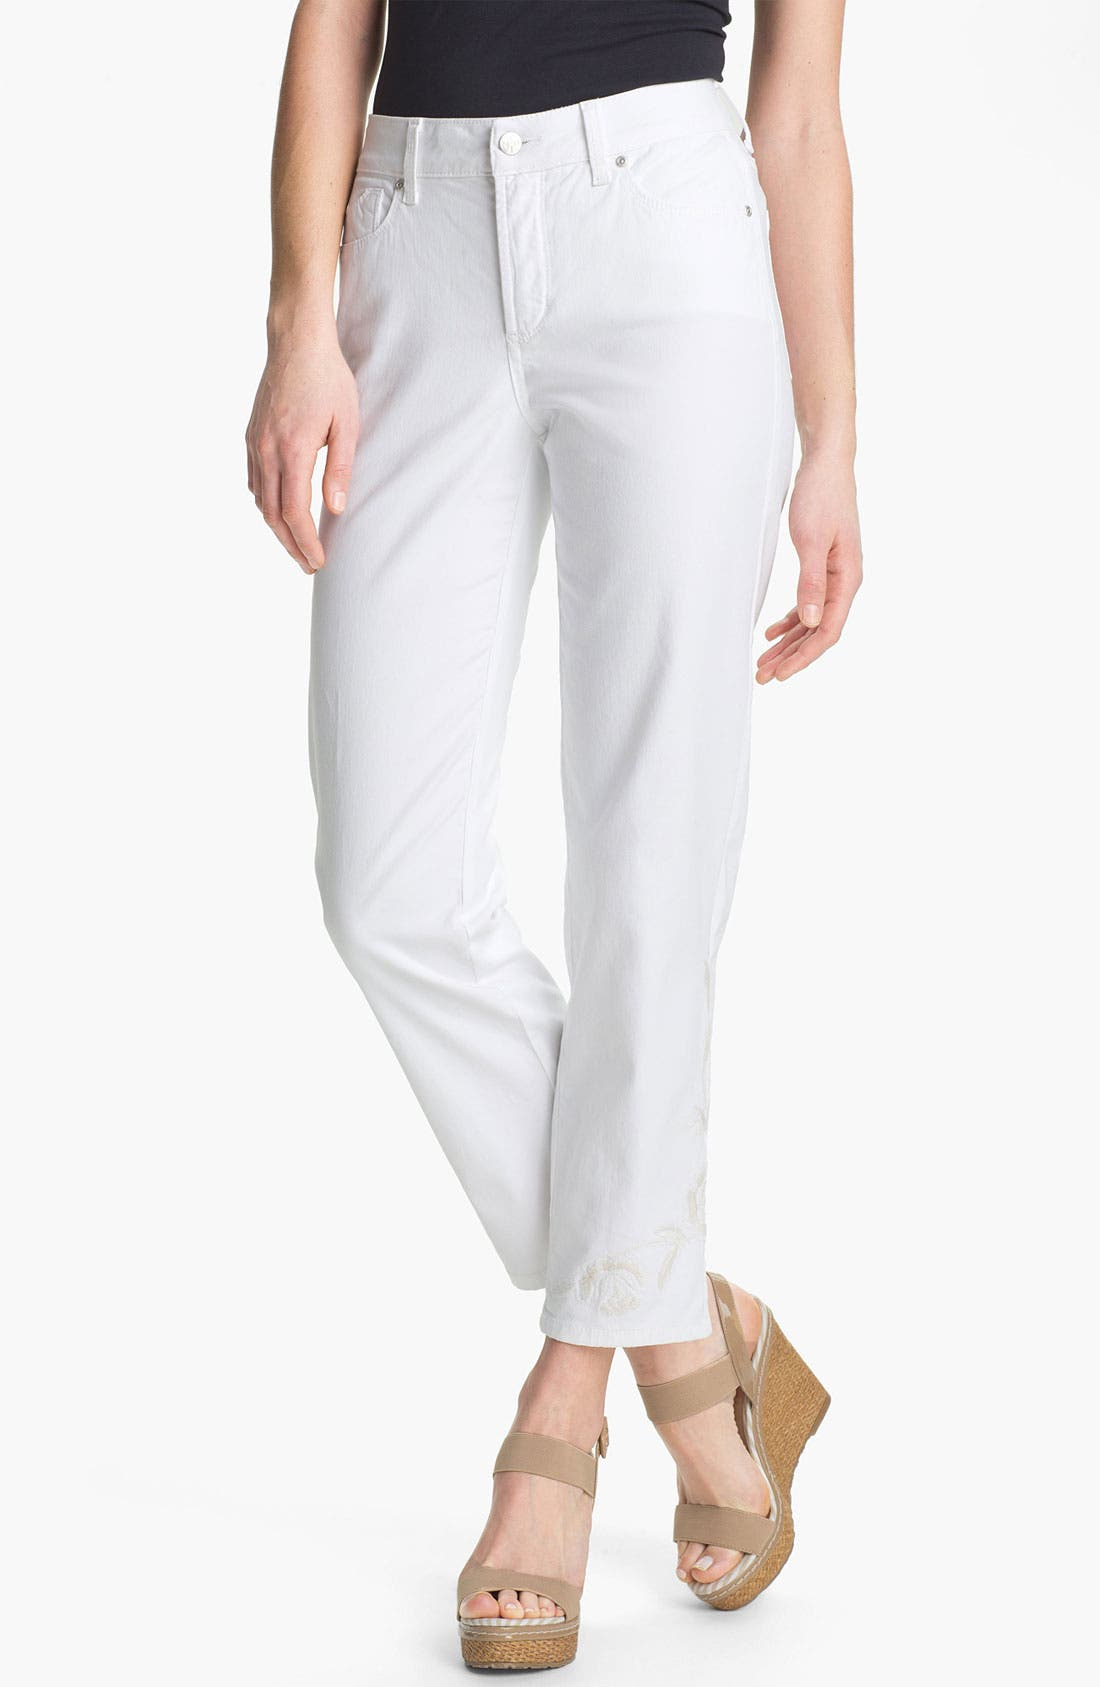 Alternate Image 1 Selected - NYDJ 'Alisha' Embroidered Skinny Stretch Ankle Jeans